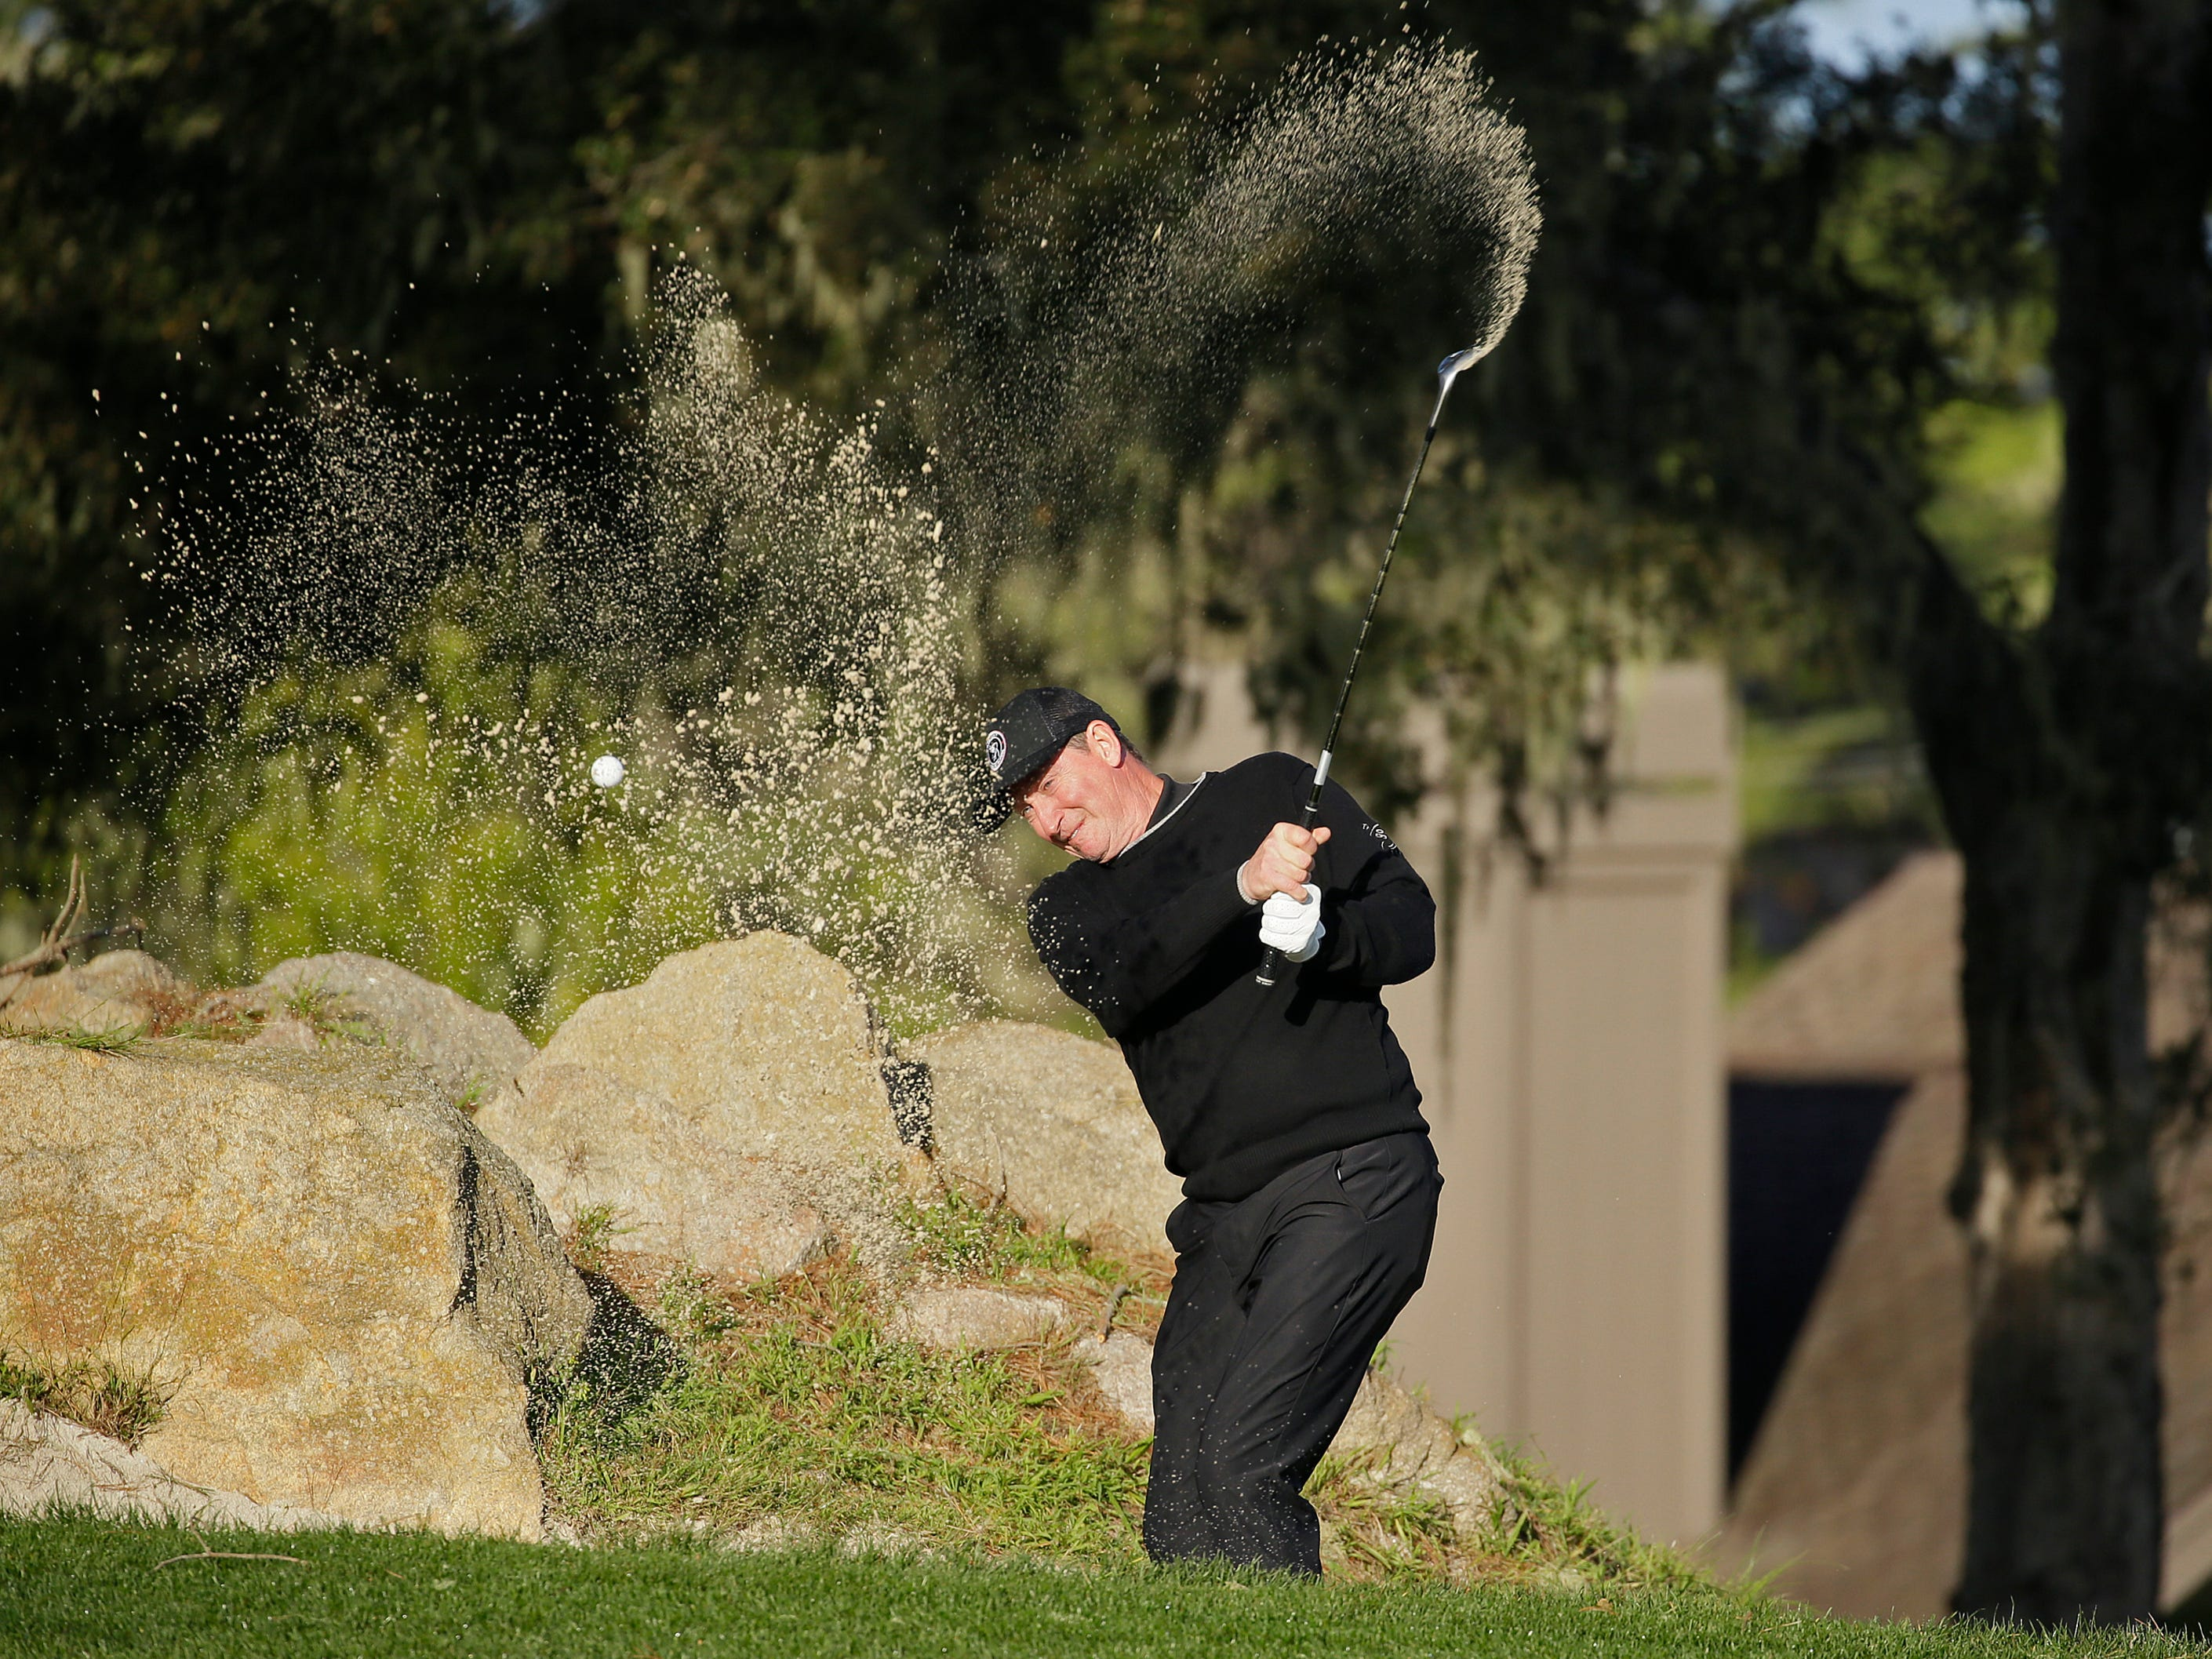 Hockey legend Wayne Gretzky hits out of a bunker onto the second green of the Monterey Peninsula Country Club Shore Course during the first round of the AT&T Pebble Beach National Pro-Am.